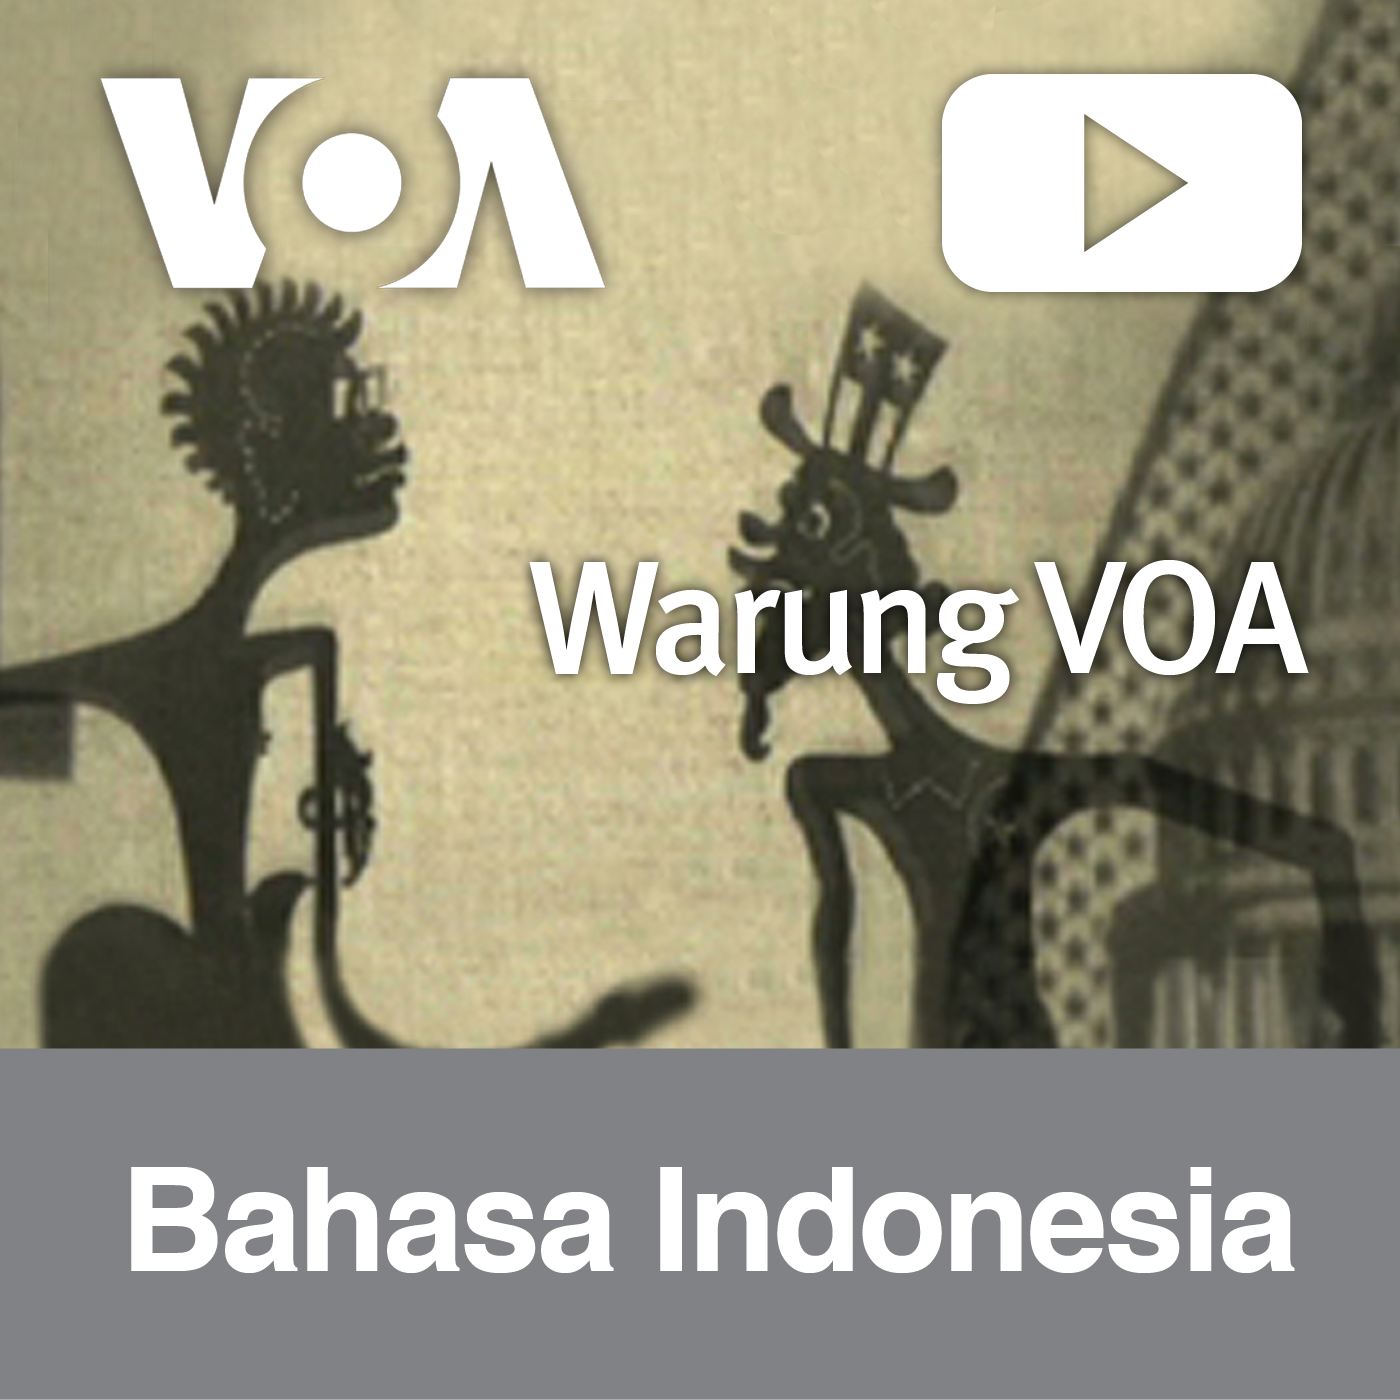 Warung VOA - Voice of America | Bahasa Indonesia